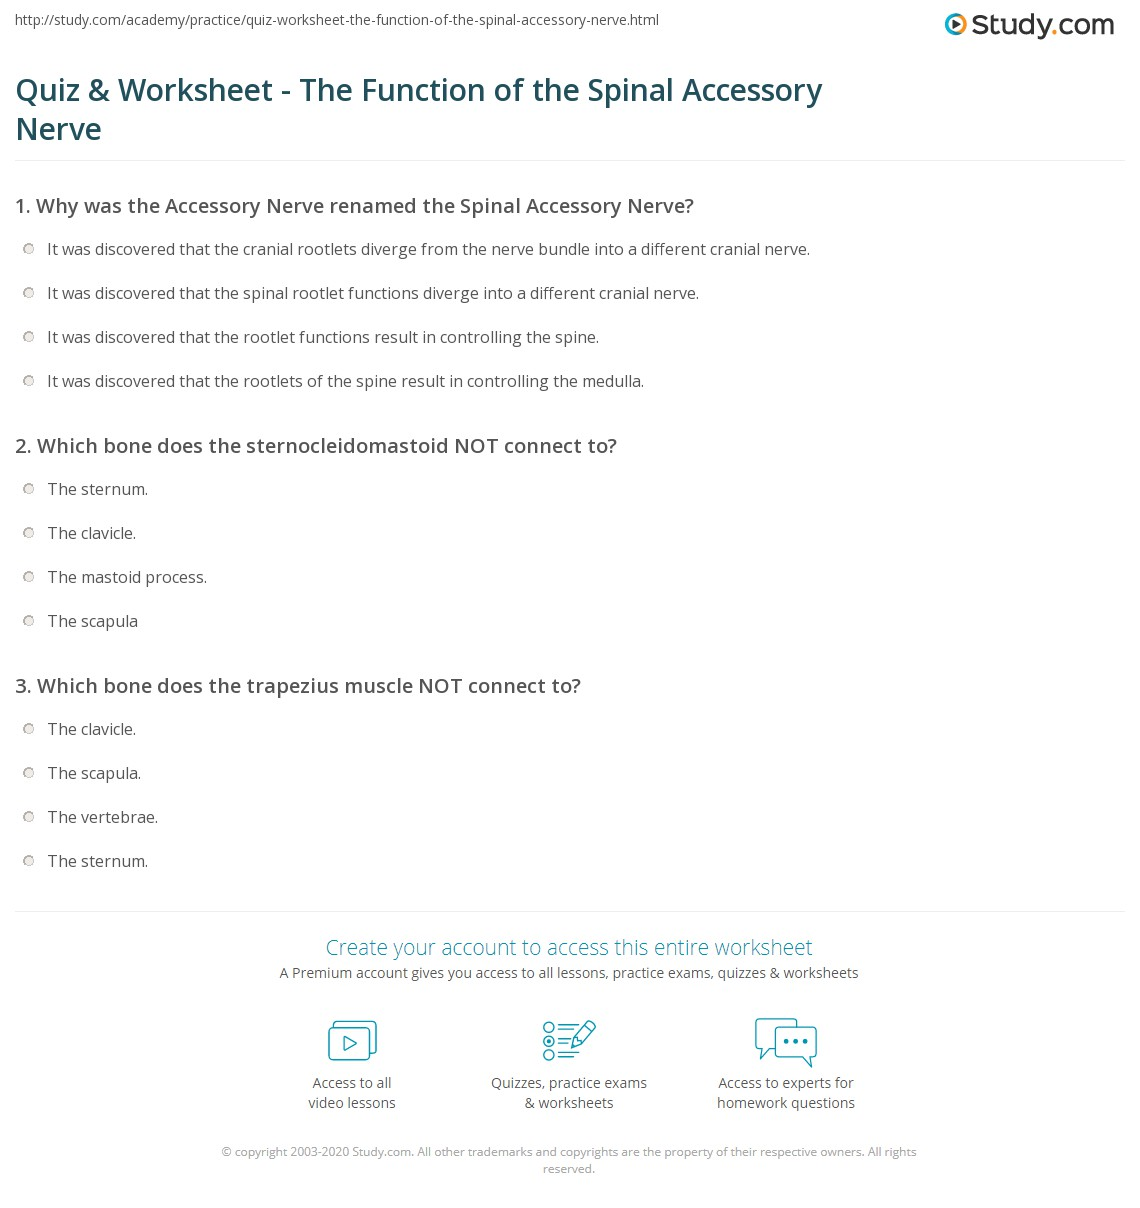 Quiz & Worksheet - The Function of the Spinal Accessory Nerve ...